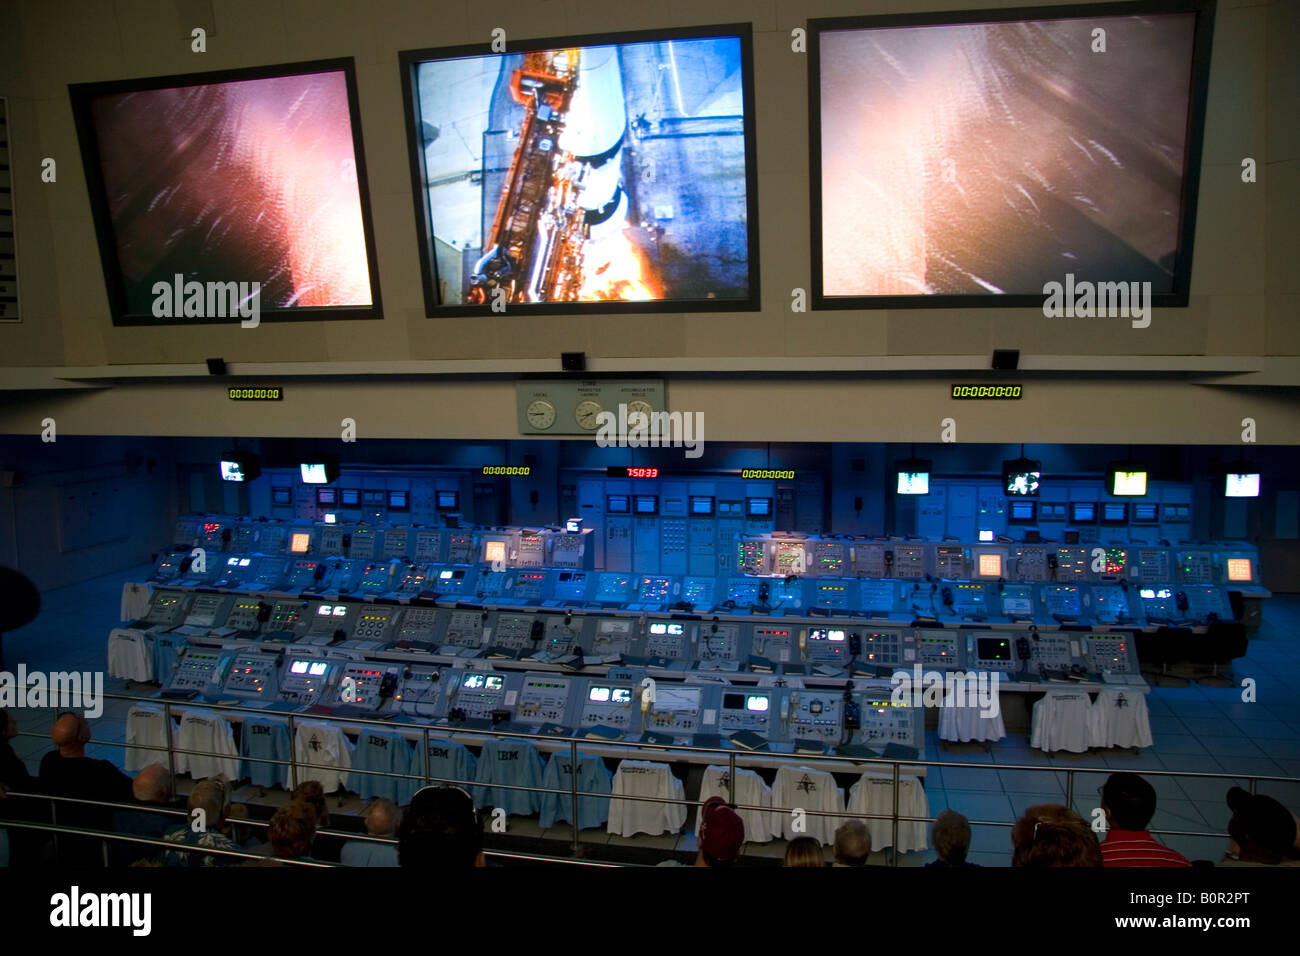 NASA control room for the Apollo 11 manned mission to land on the moon at the John F Kennedy Space Center Cape Canaveral - Stock Image